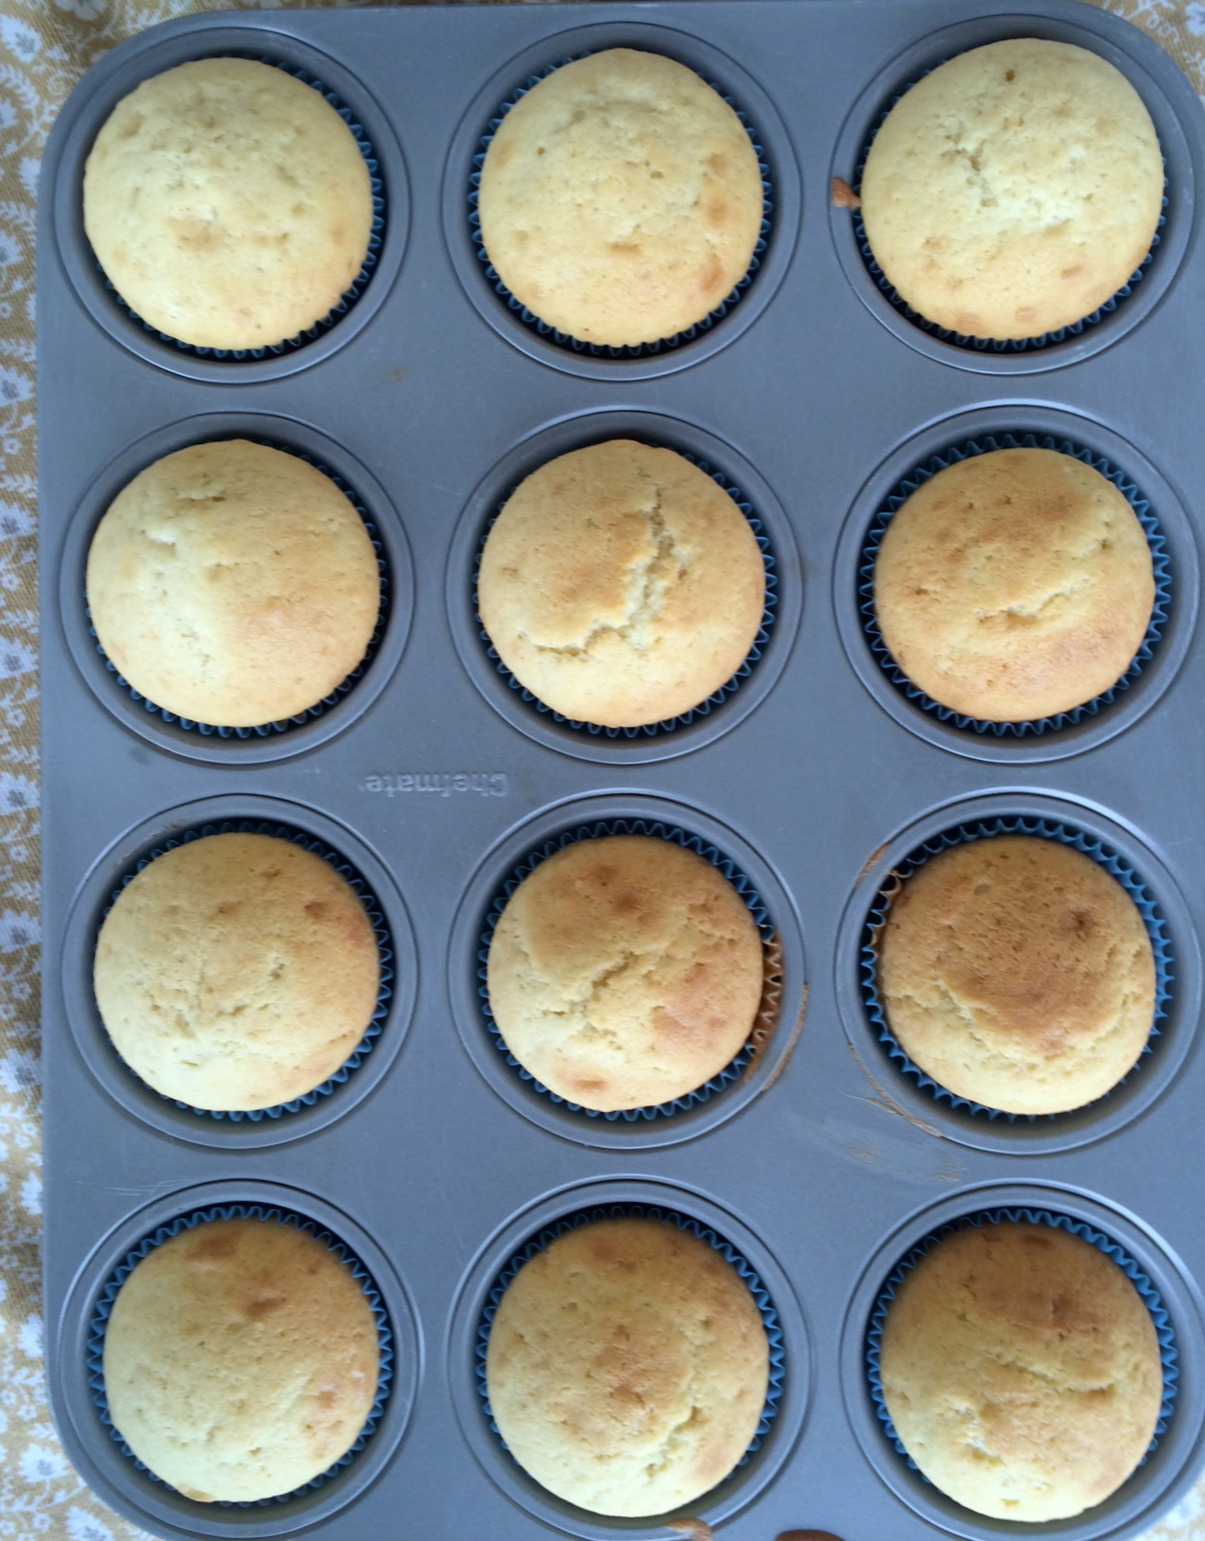 cupcakes cooked